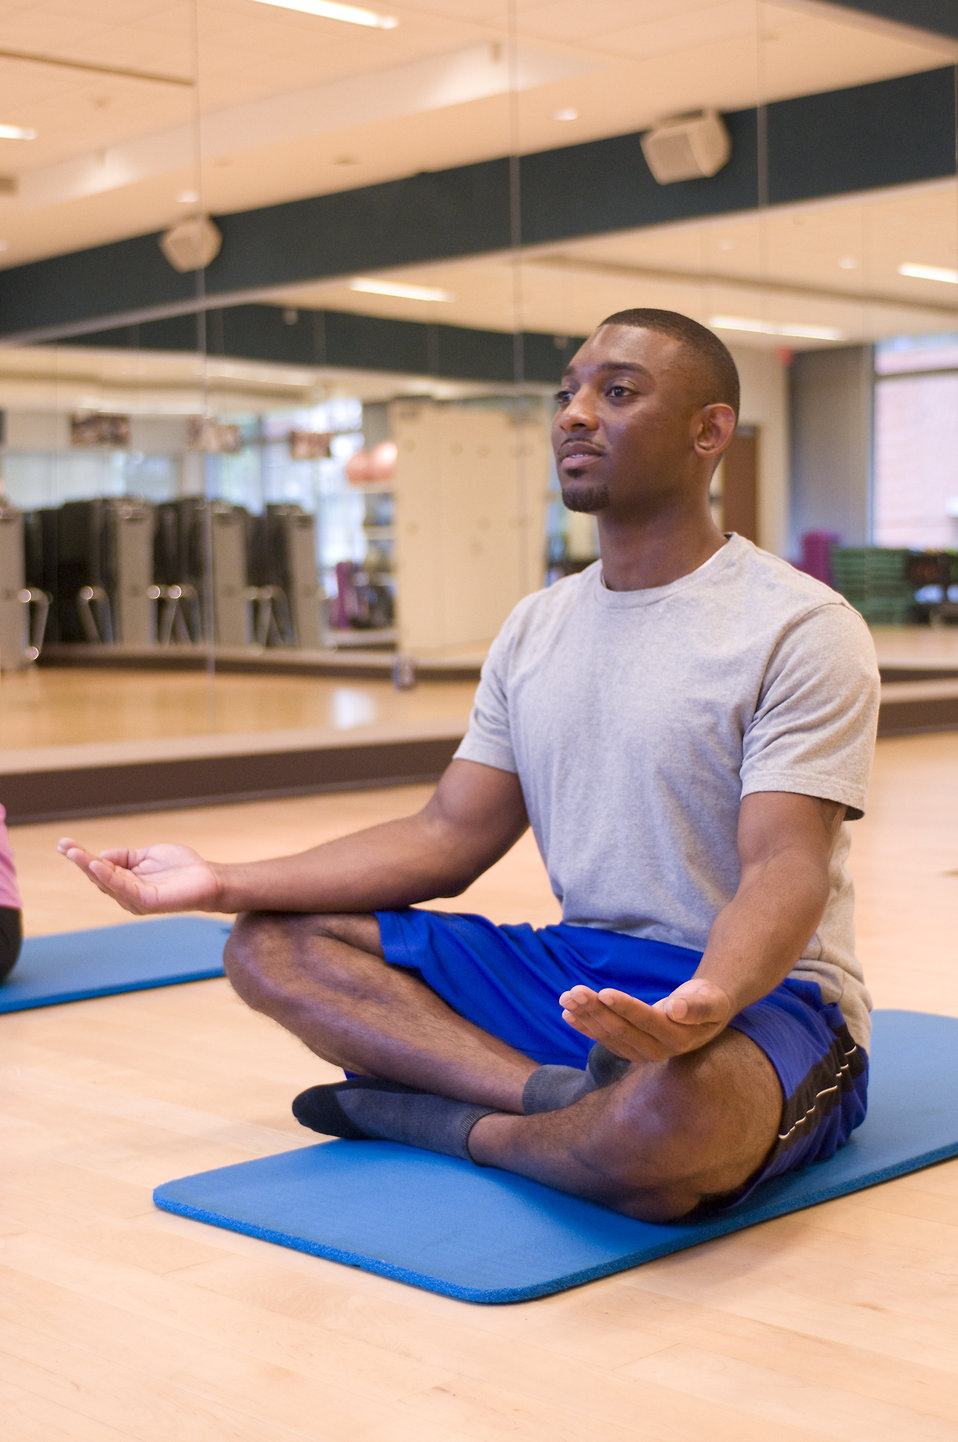 A man practicing yoga in a fitness center : Free Stock Photo